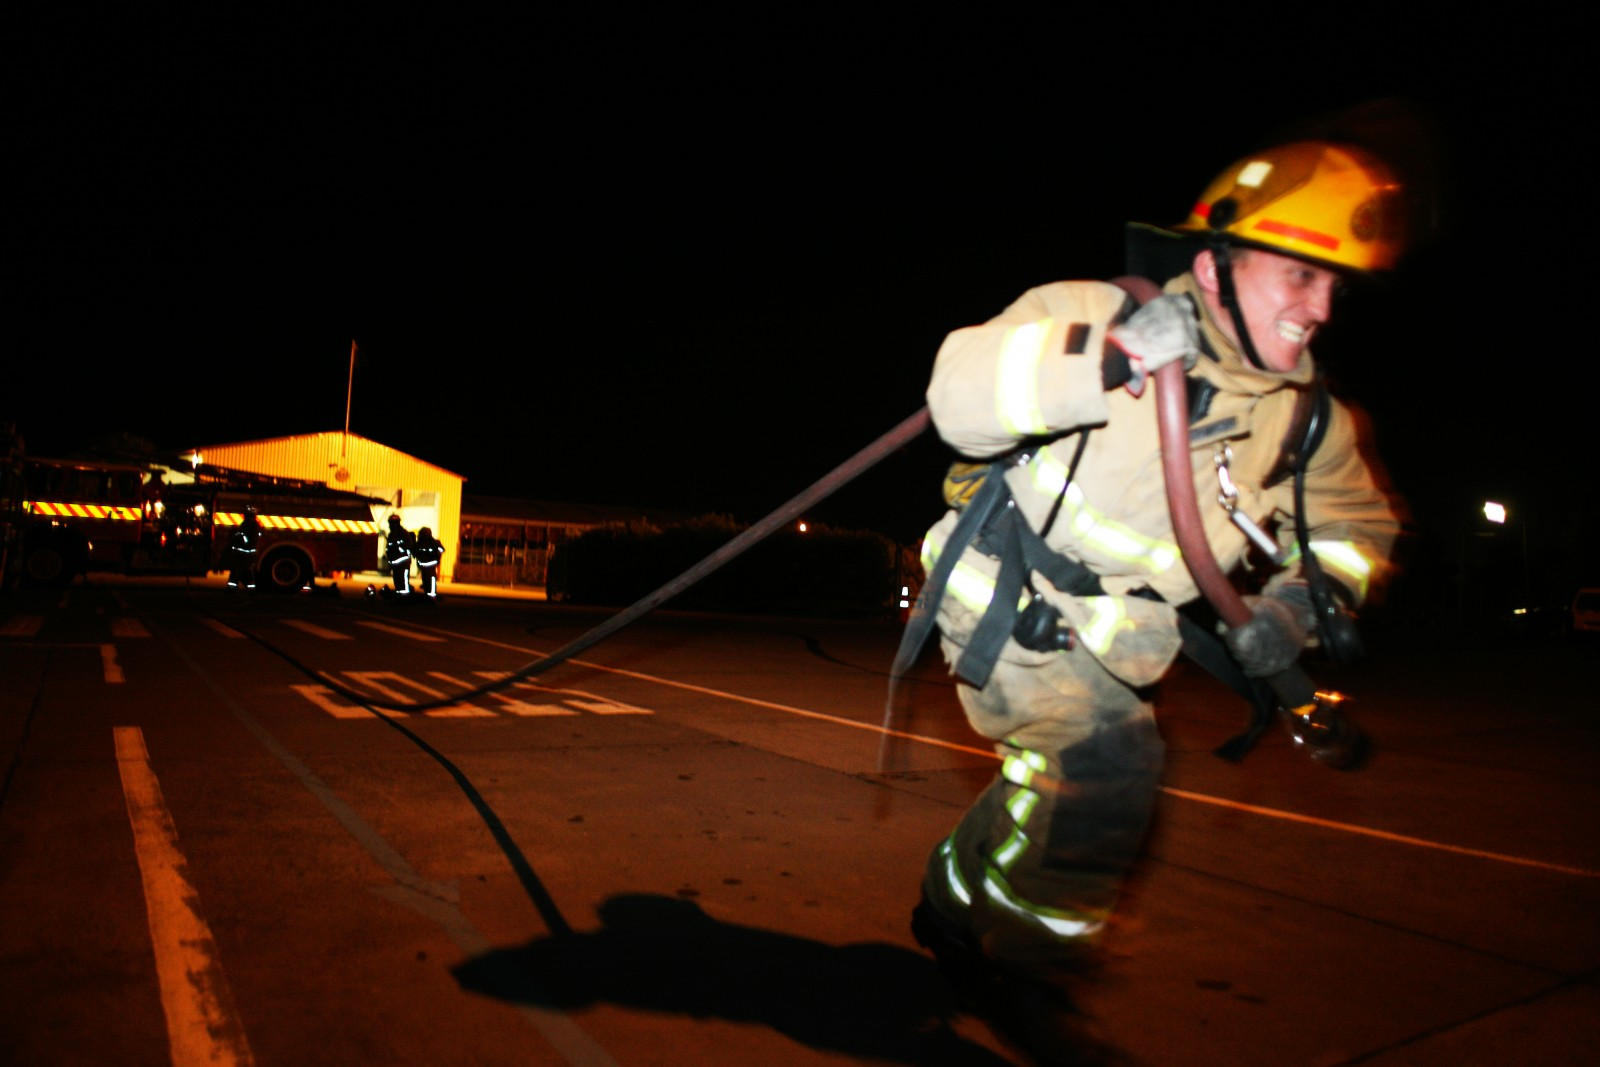 The paradoxical need for speedy response and heavy gear that can survive hostile conditions means that fitness is an important factor in fire rescue. Brigades have regular practice nights where firefighters hone their skills and maintain a state of physical appearances.